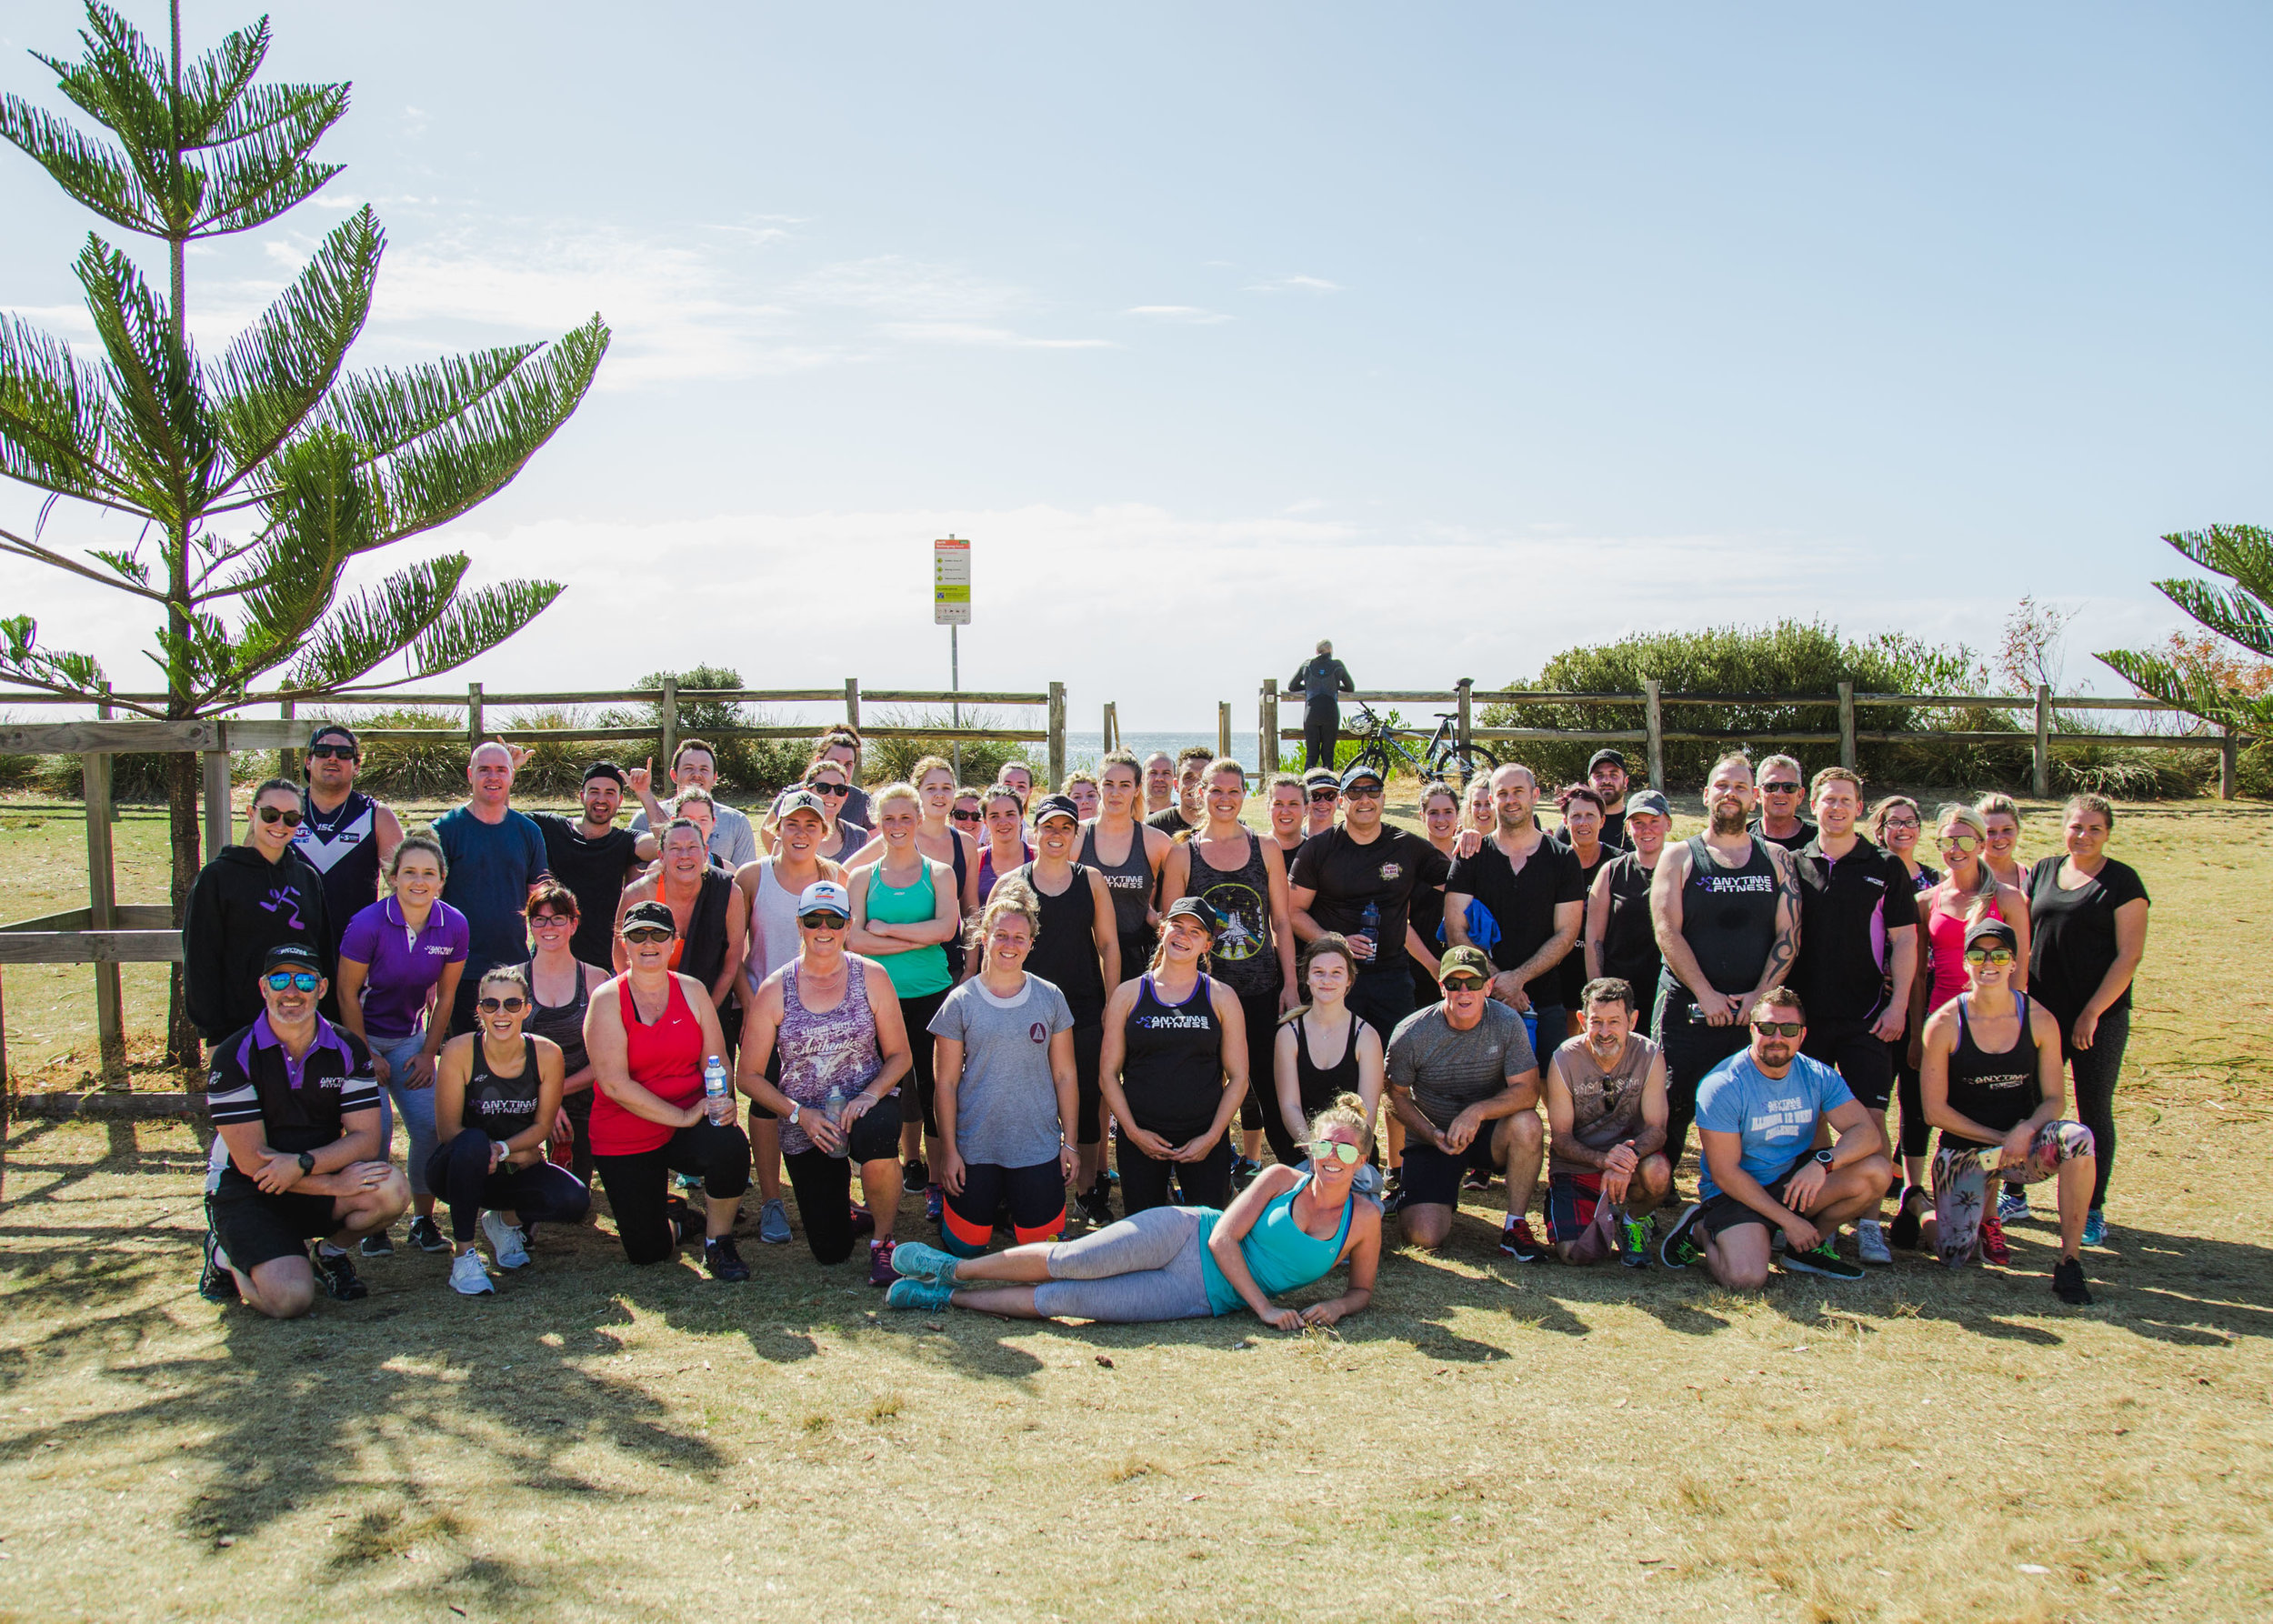 Anytime Fitness - Bootcamp-69.jpg